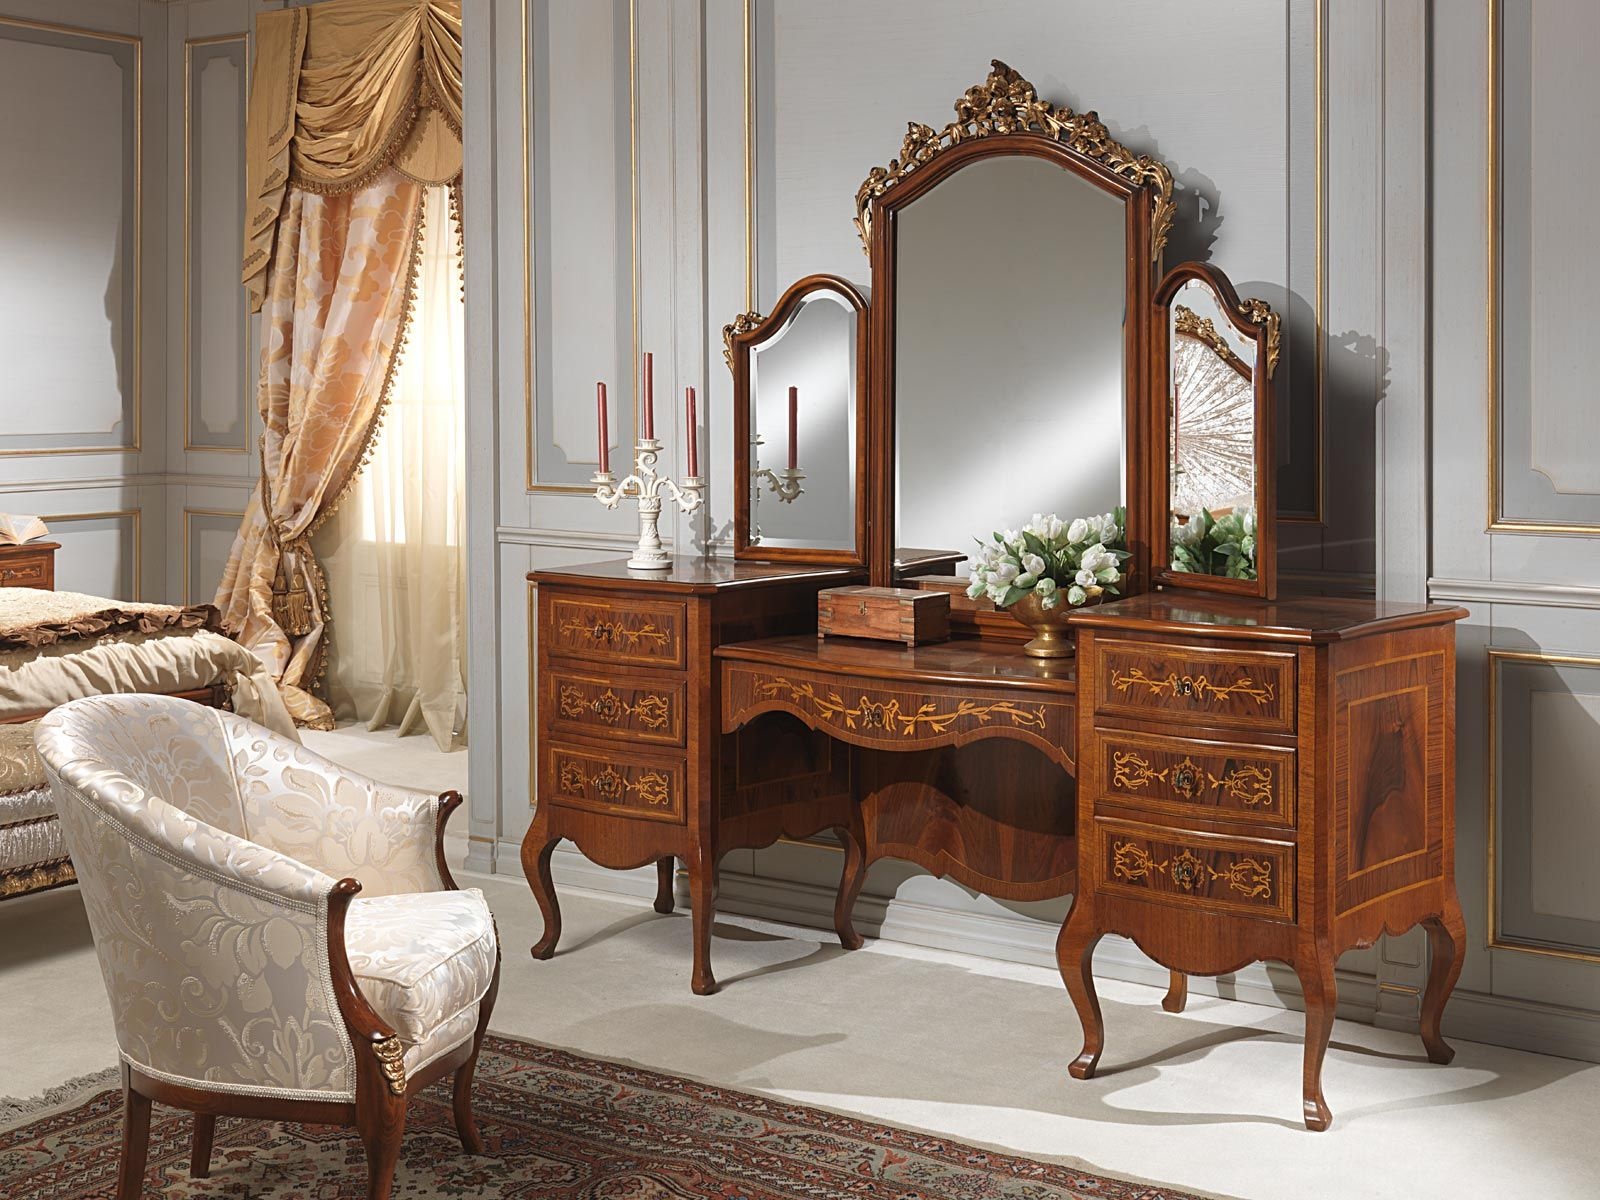 Best Dressing Table Big Dressing Table In Walnut Wood With Inlays And Antique